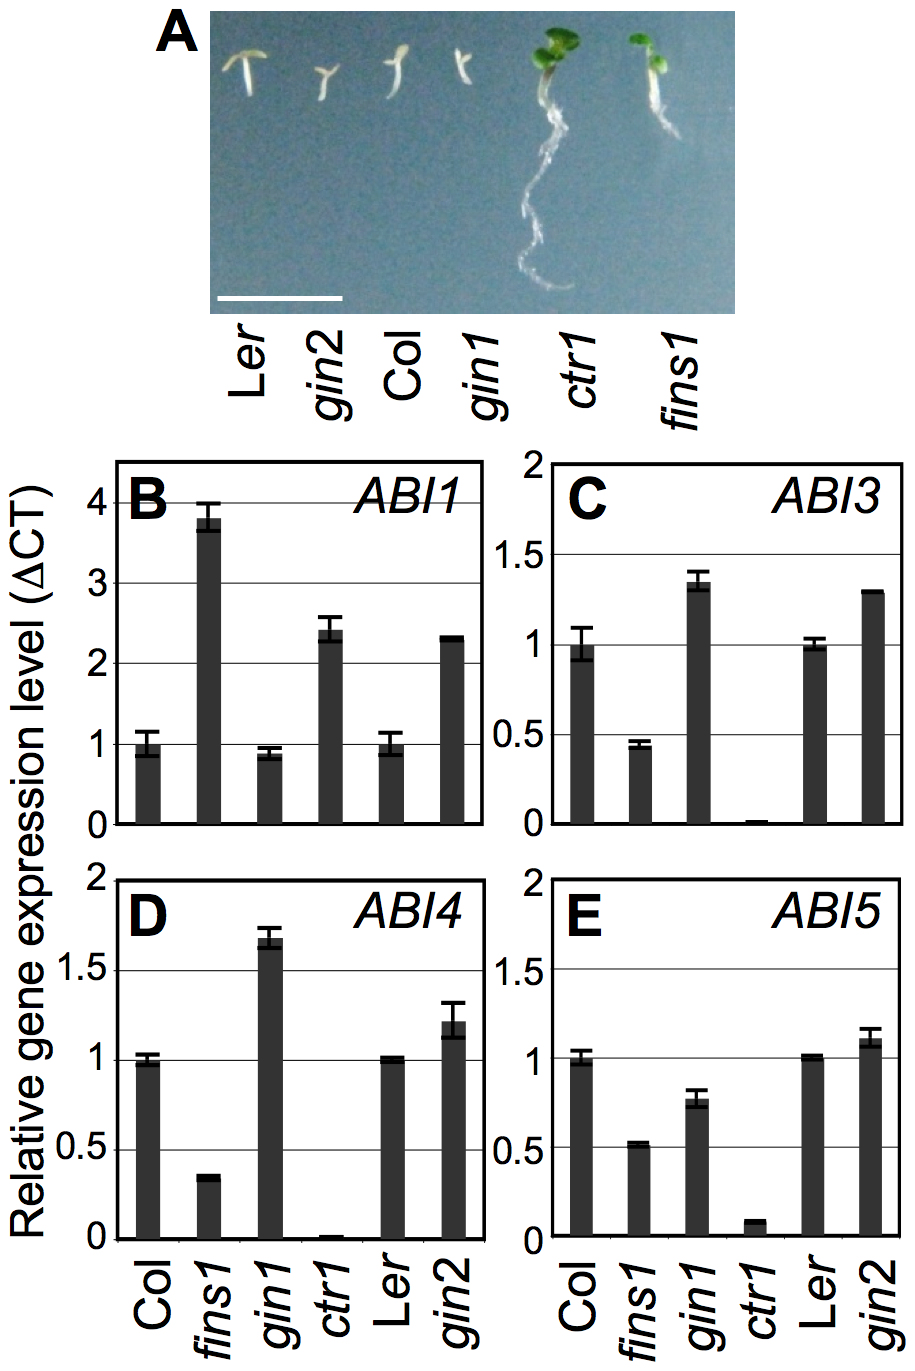 Function of FINS1 in ABA signaling.